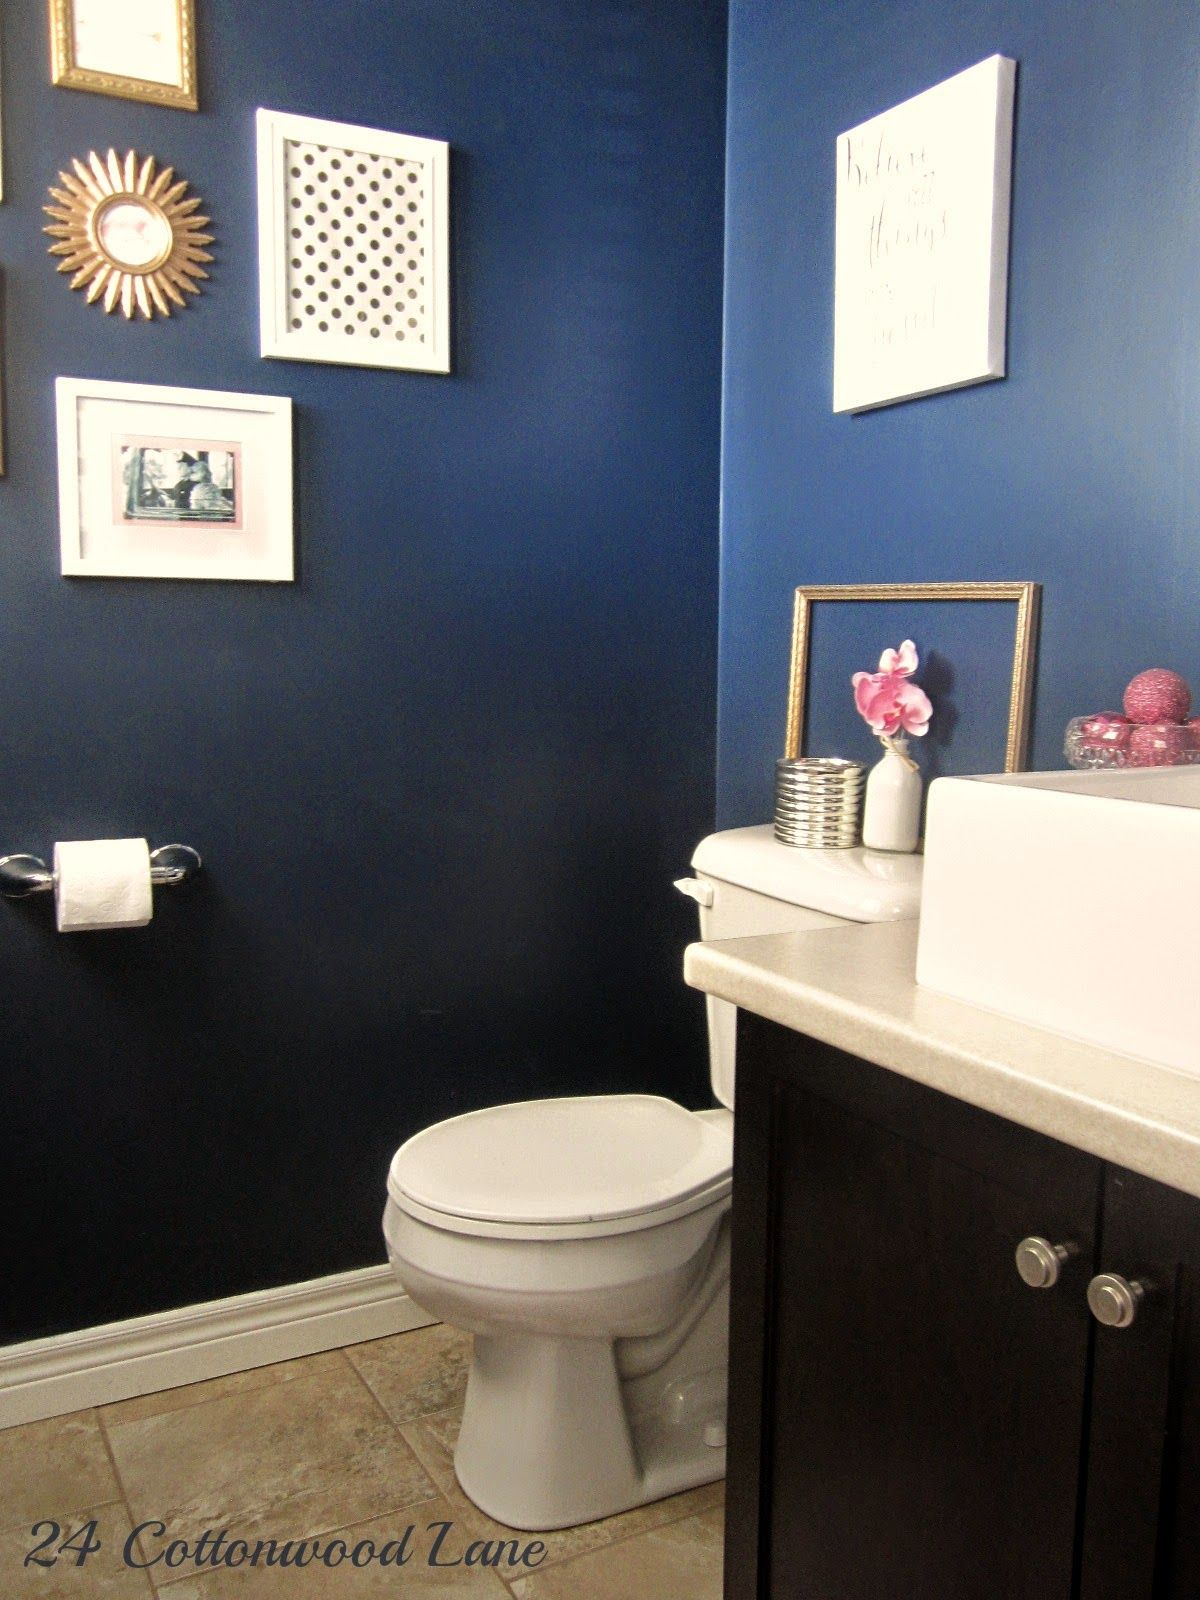 24 Cottonwood Lane Navy Powder Room Reveal Beige Bathroom Half Bathroom Decor Small Half Bathrooms